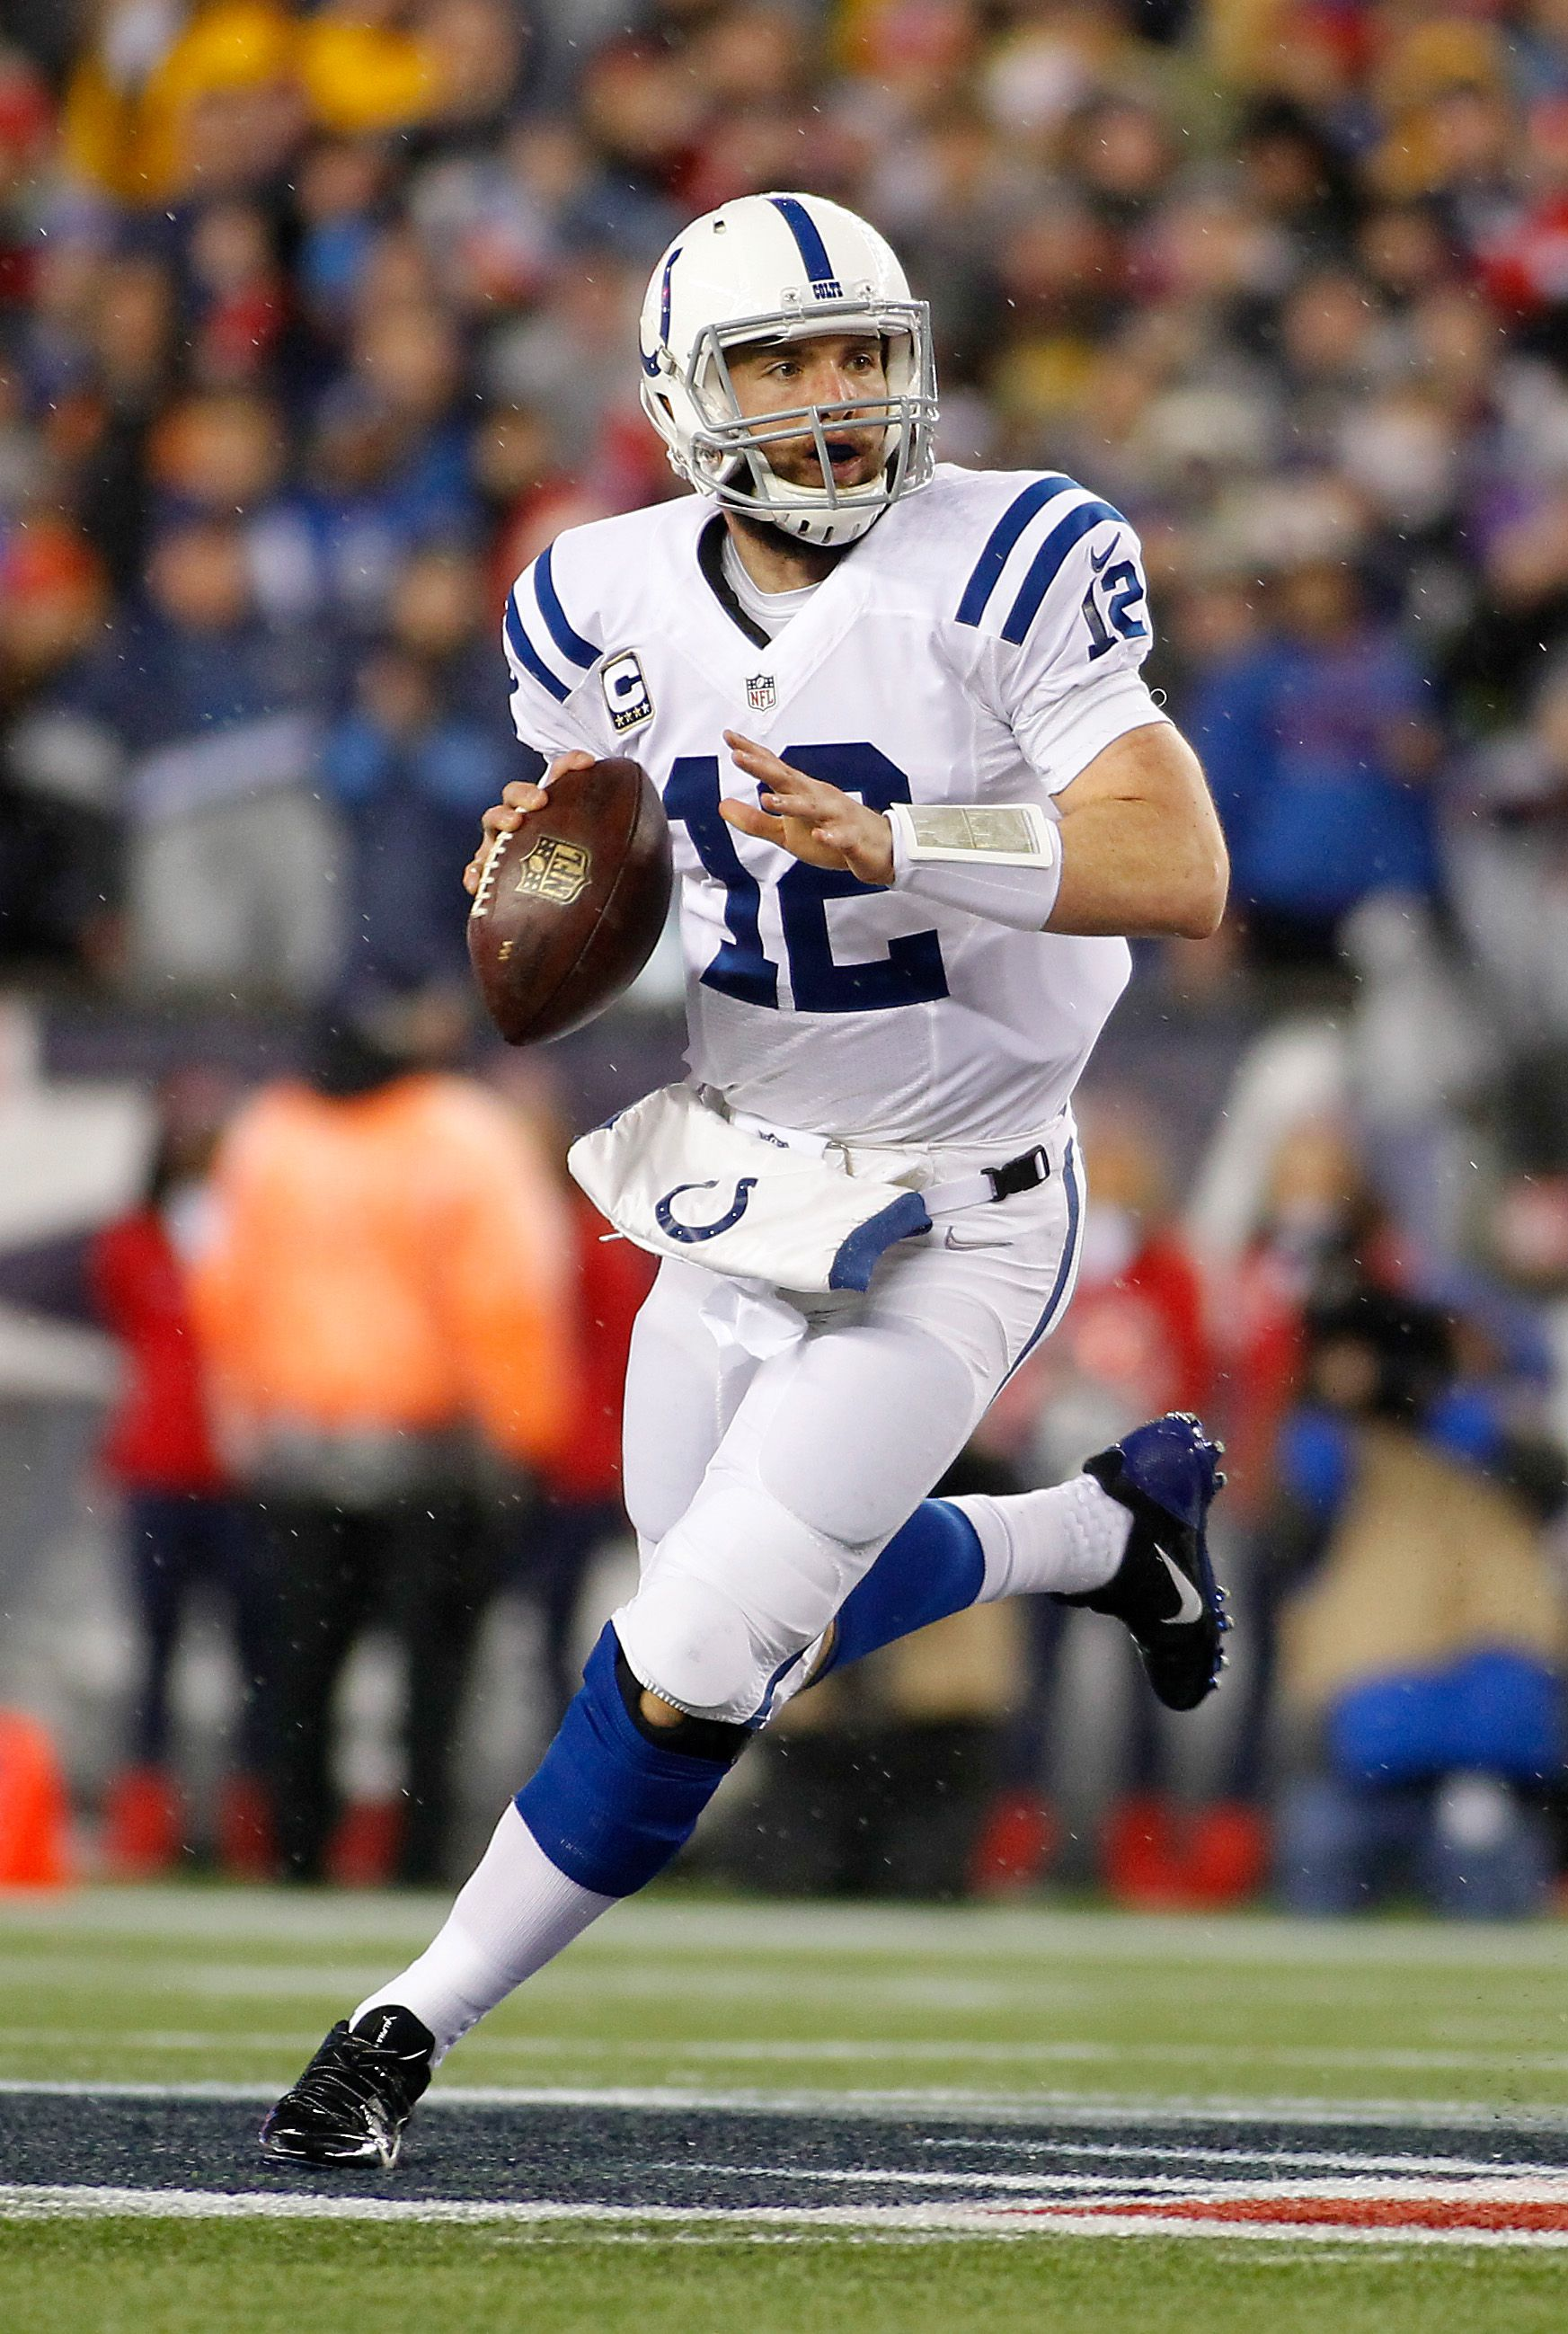 08 Quarterback Andrew Luck, Ind. Colts for 2018. Nfl